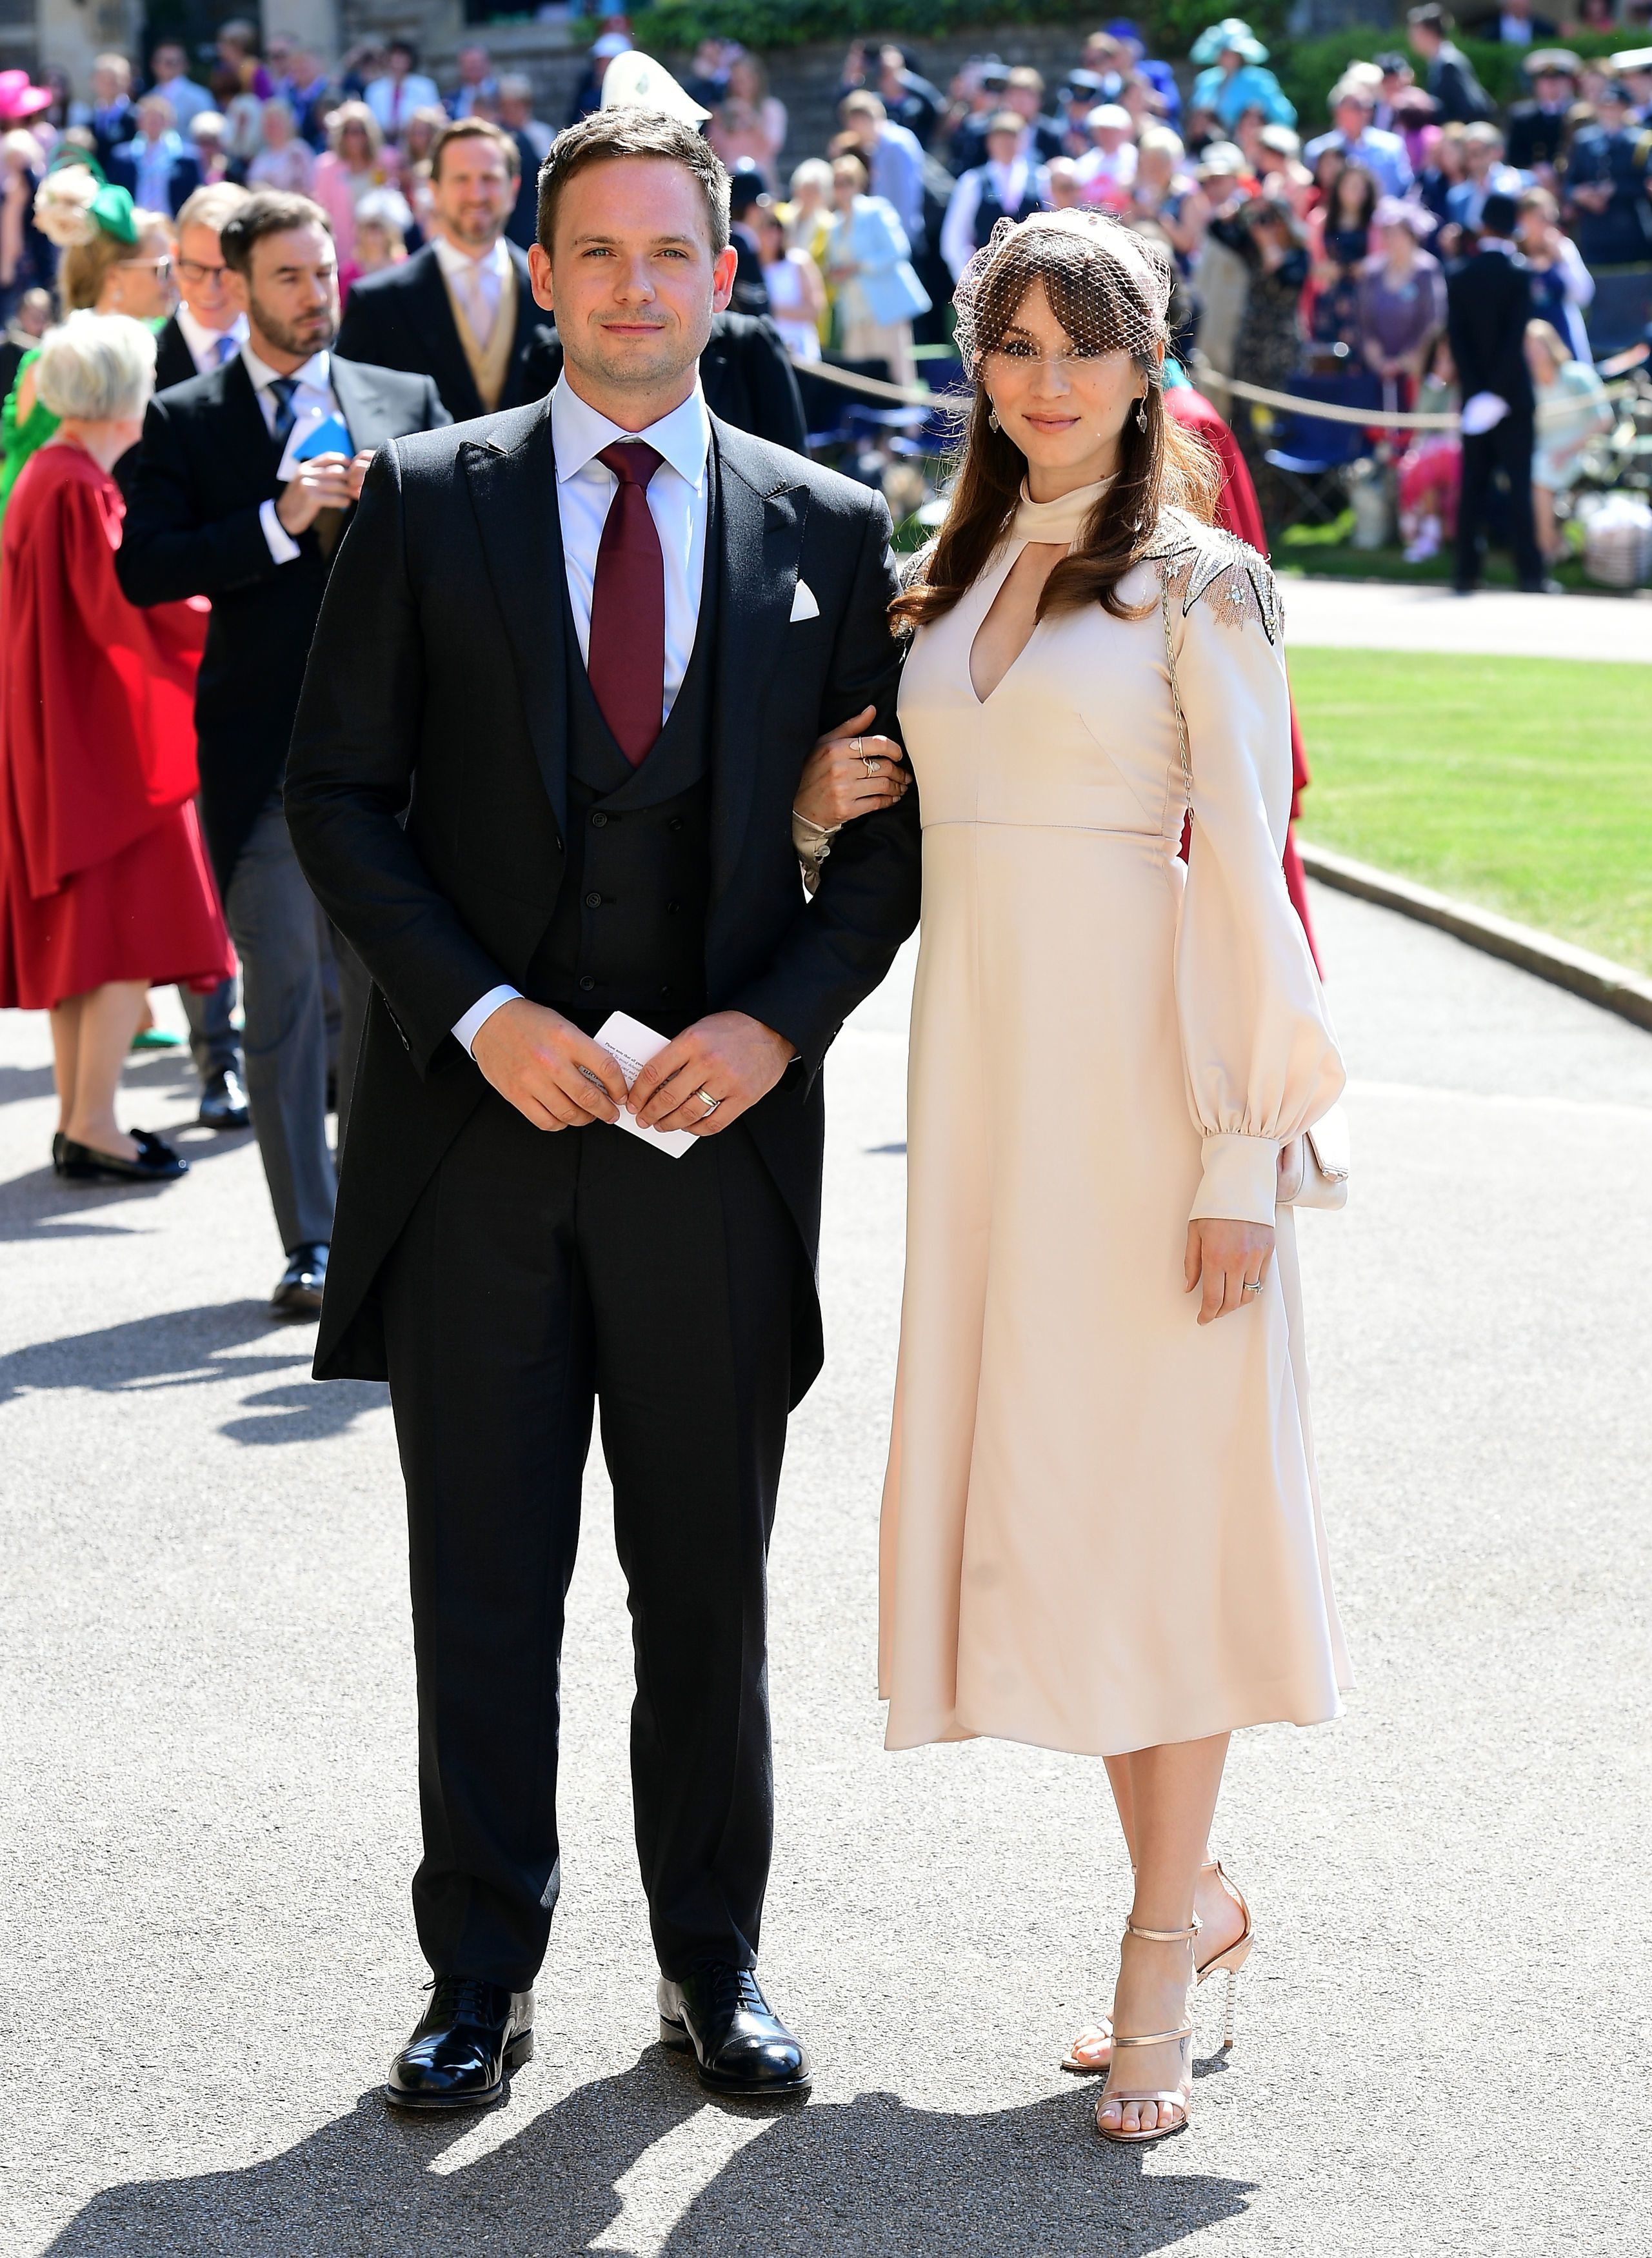 Patrick J Adams and wife Troian Bellisario at the royal wedding